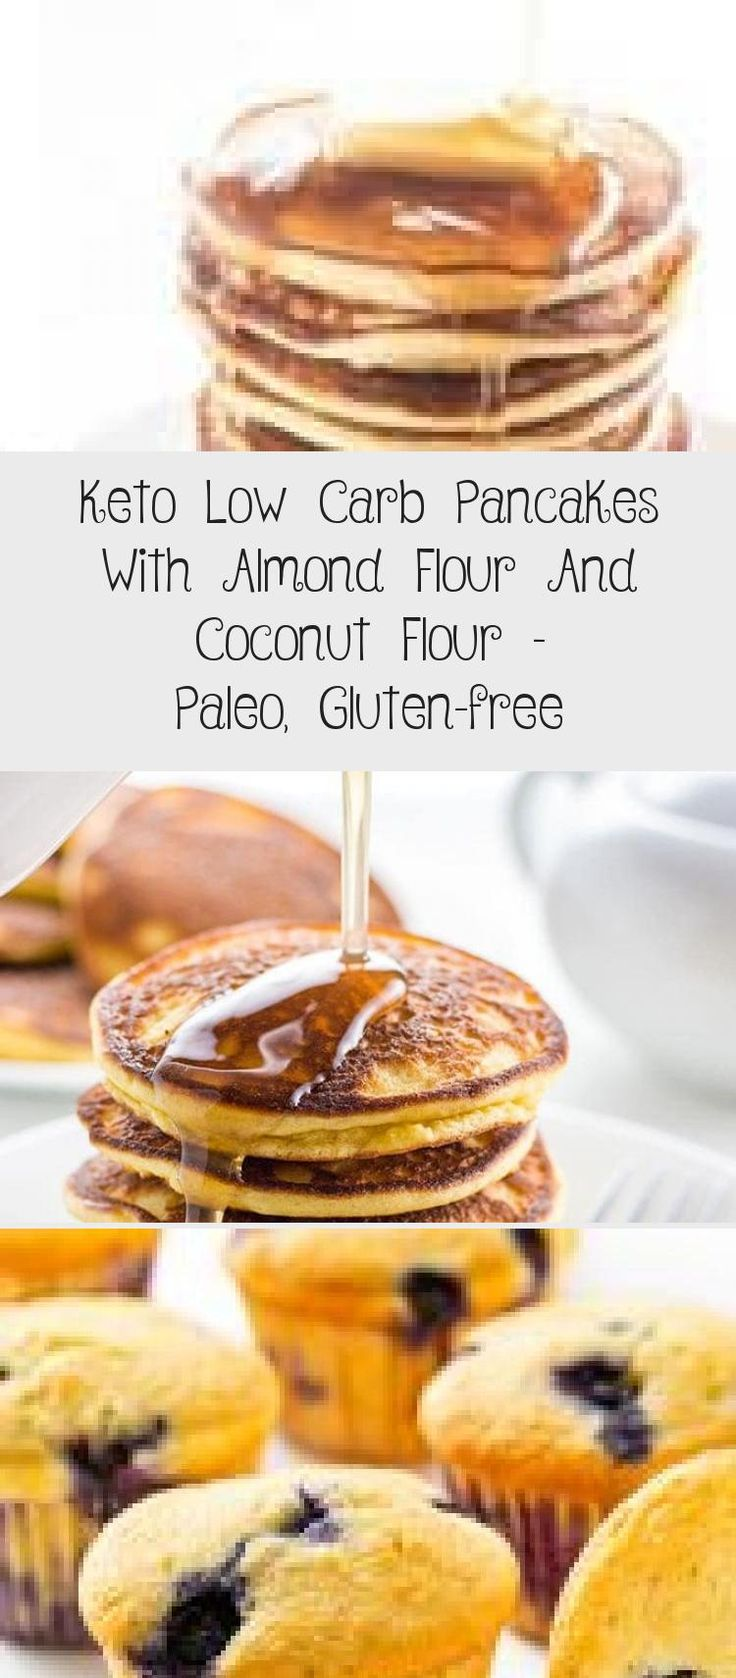 Keto Low Carb Pancakes With Almond Flour And Coconut Flour